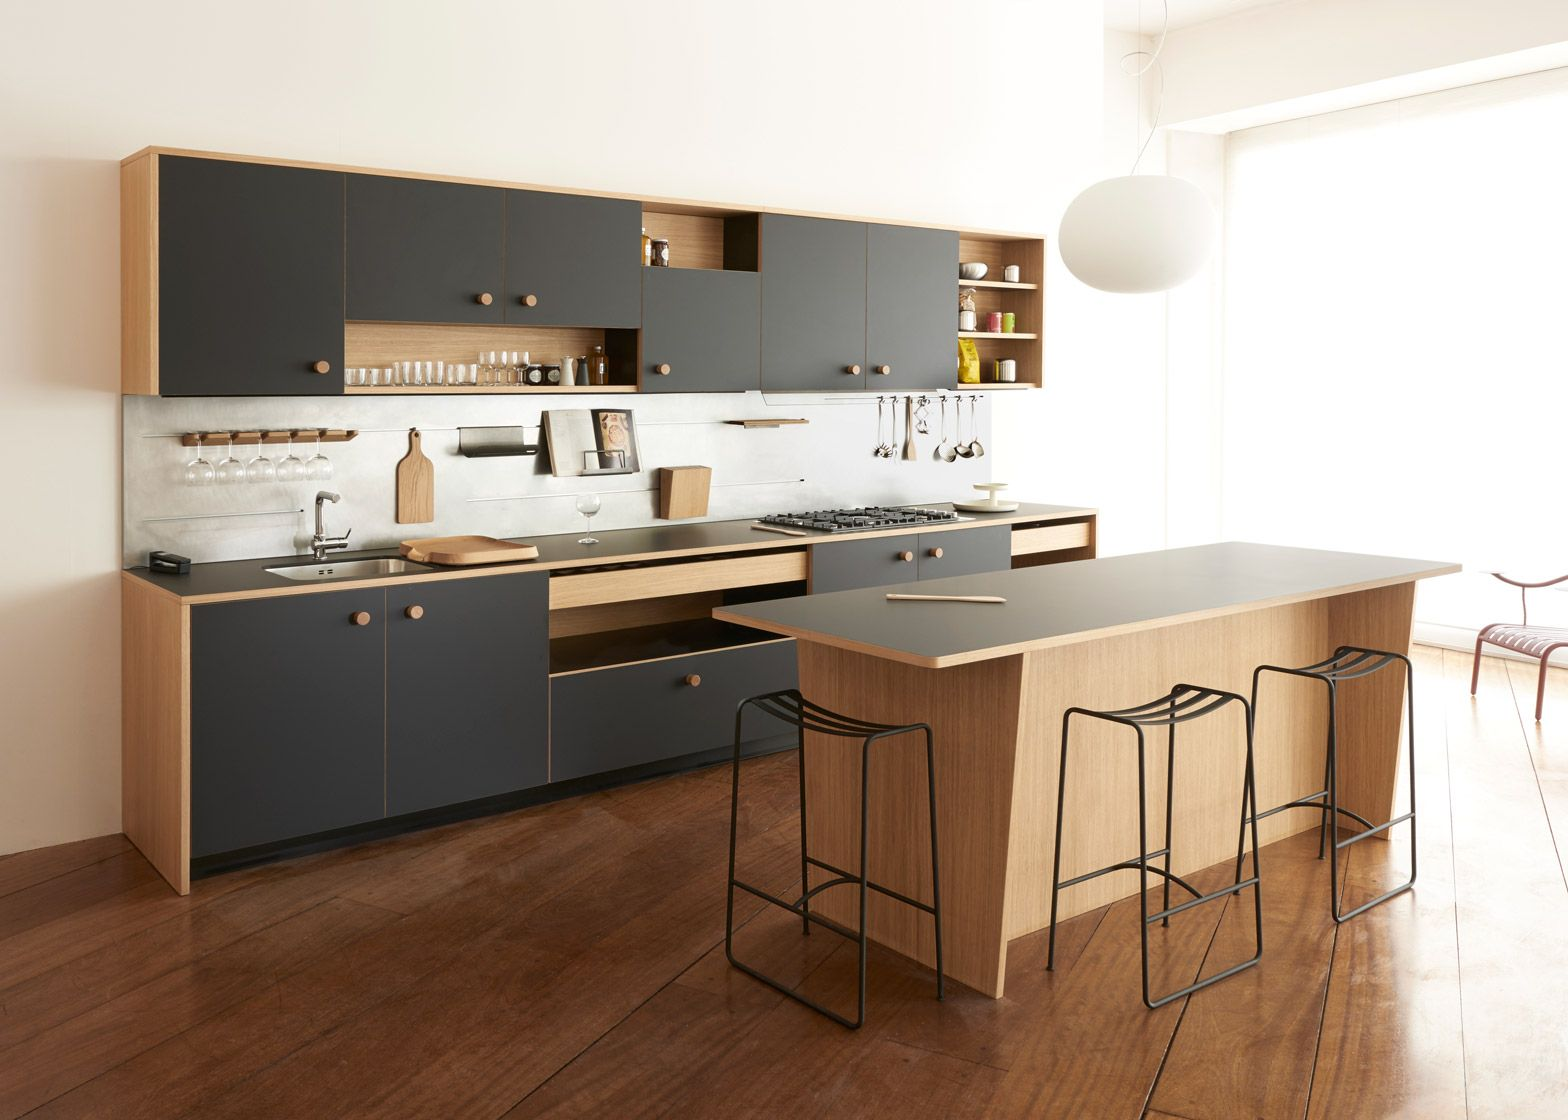 Jasper morrison reveals first kitchen design for schiffini for Kitchen design normal